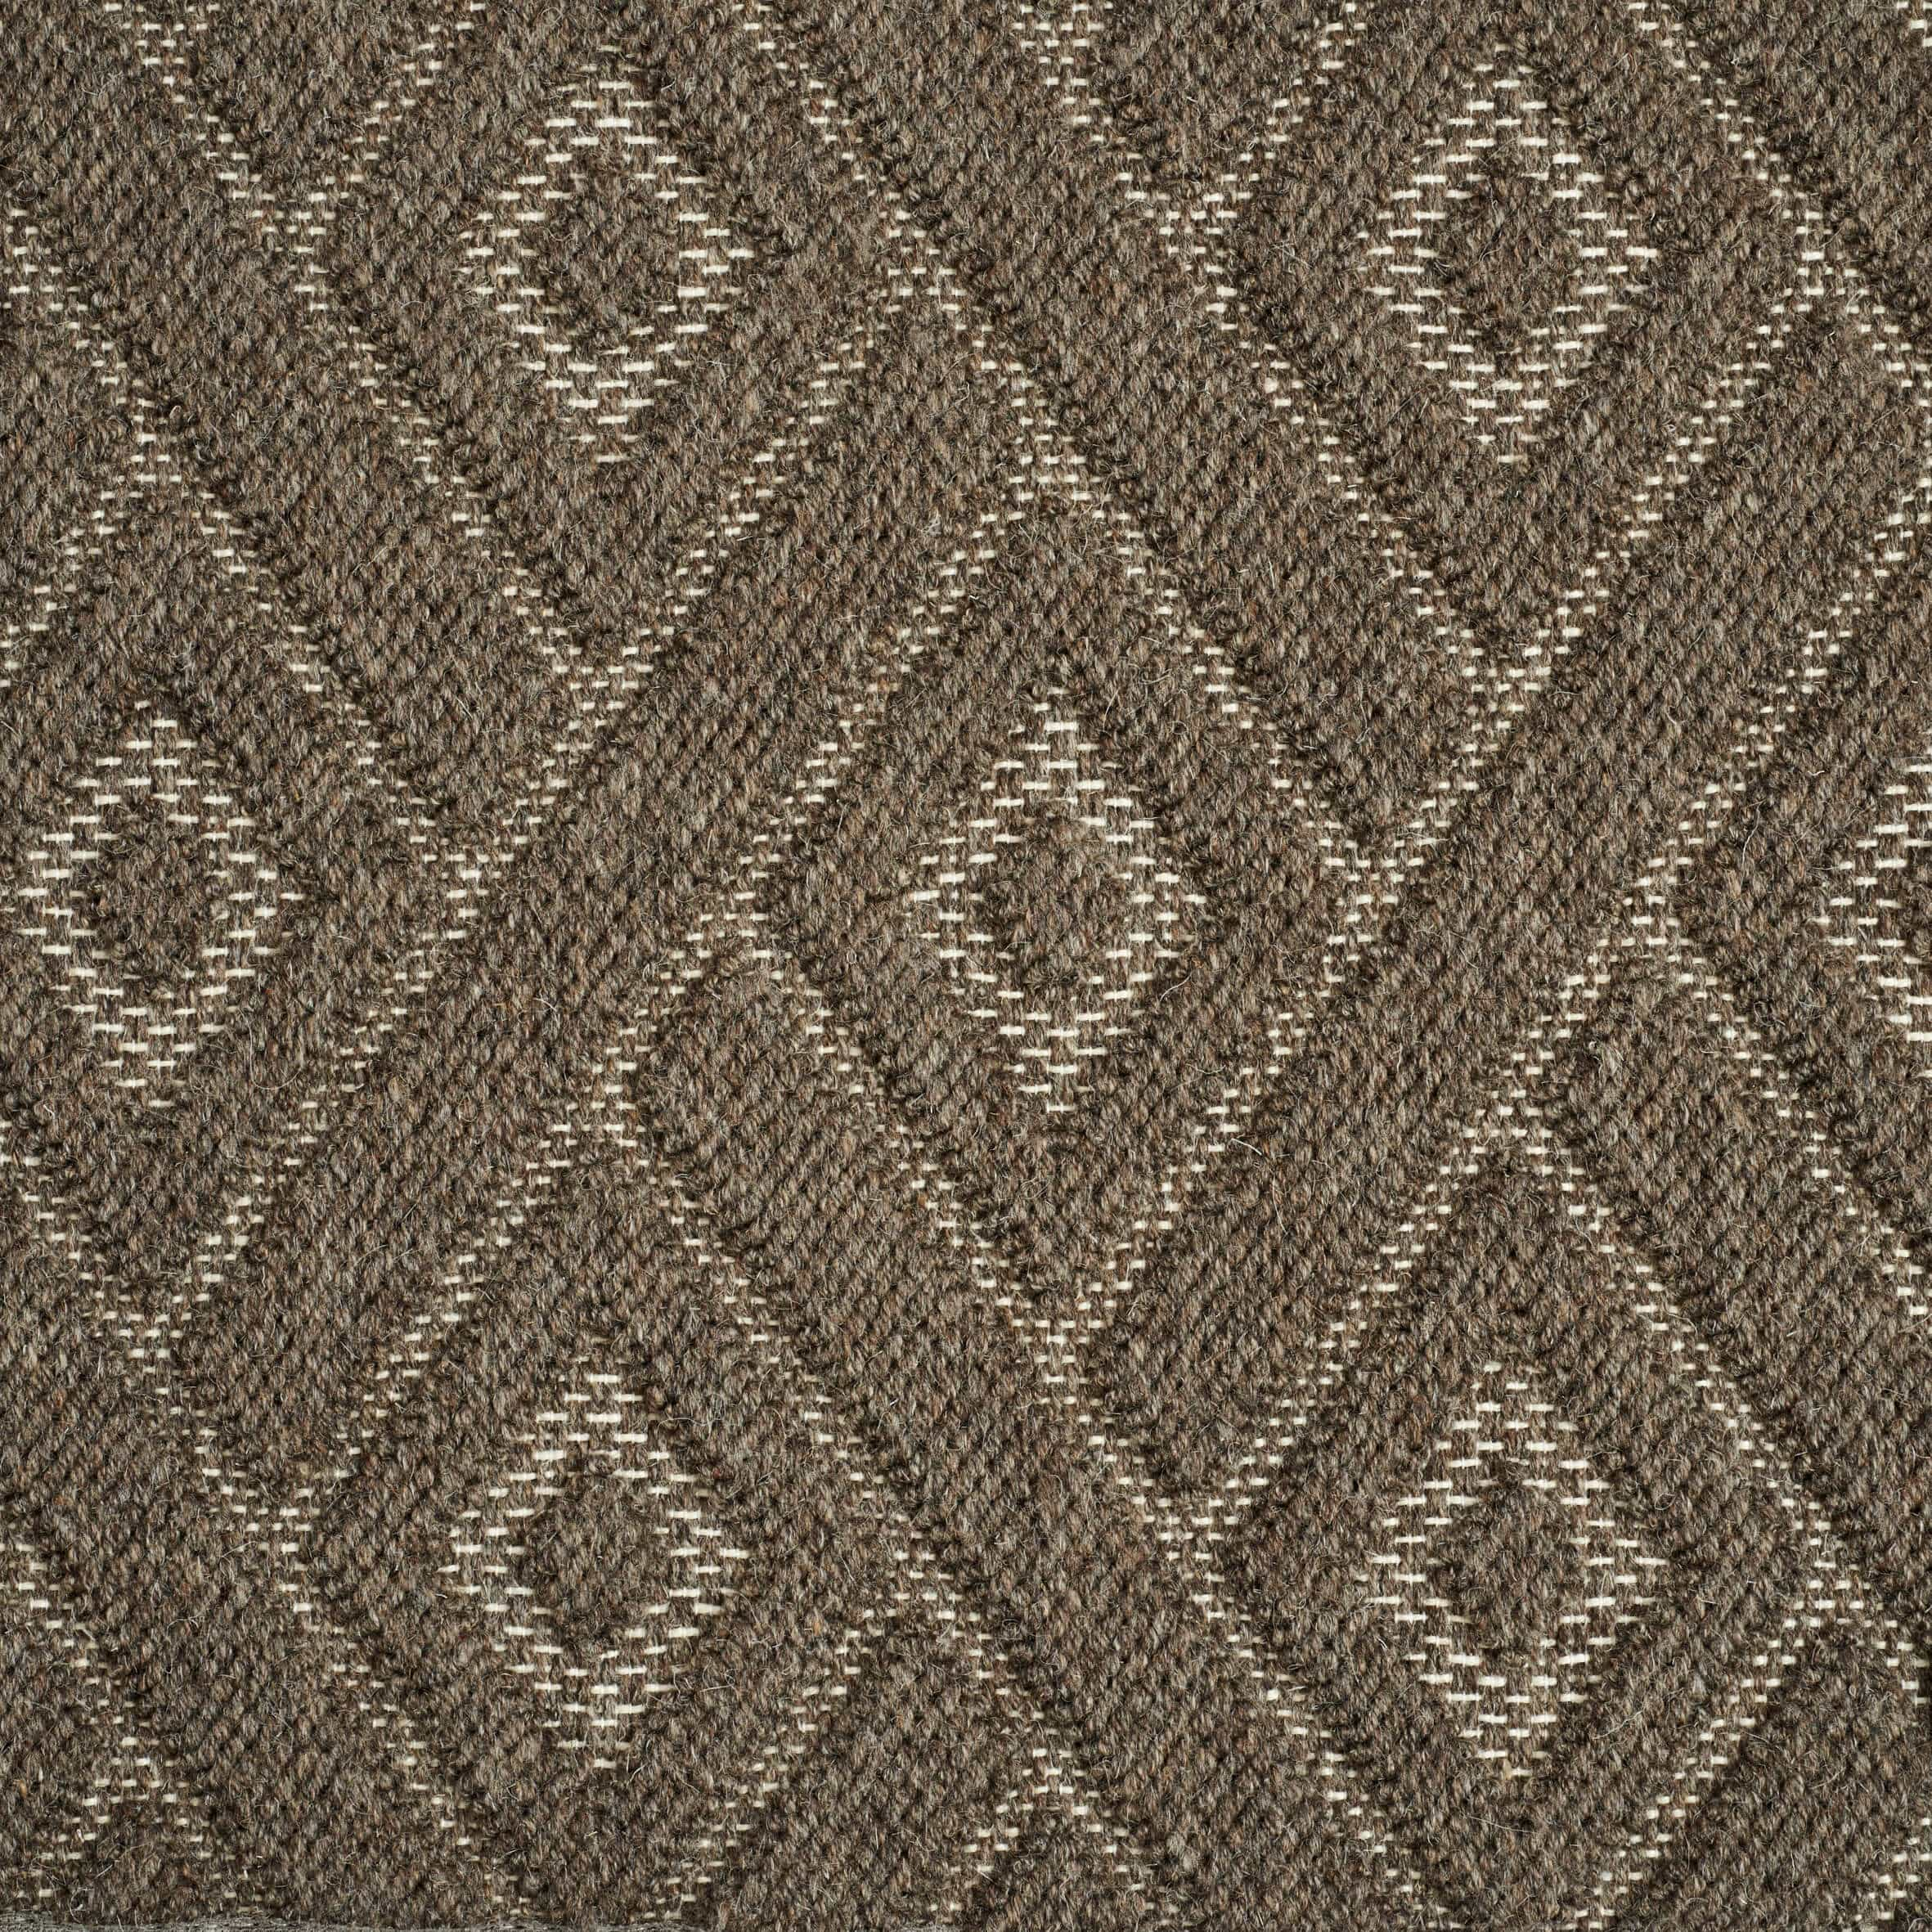 Buy Lailani By Antrim Carpets Wool Wilton Loop Carpets